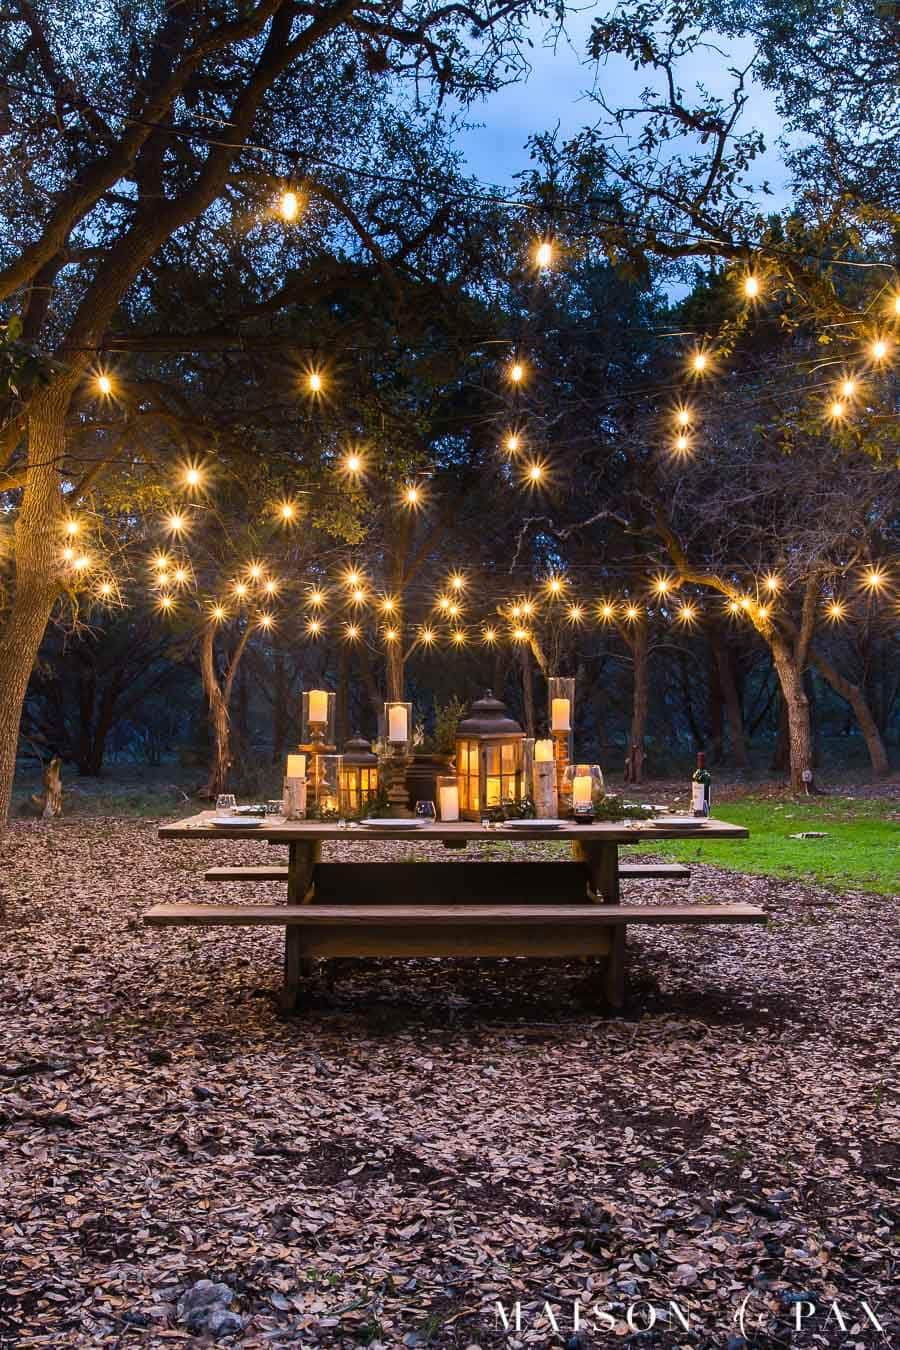 How To Hang Outdoor String Lights Maison De Pax